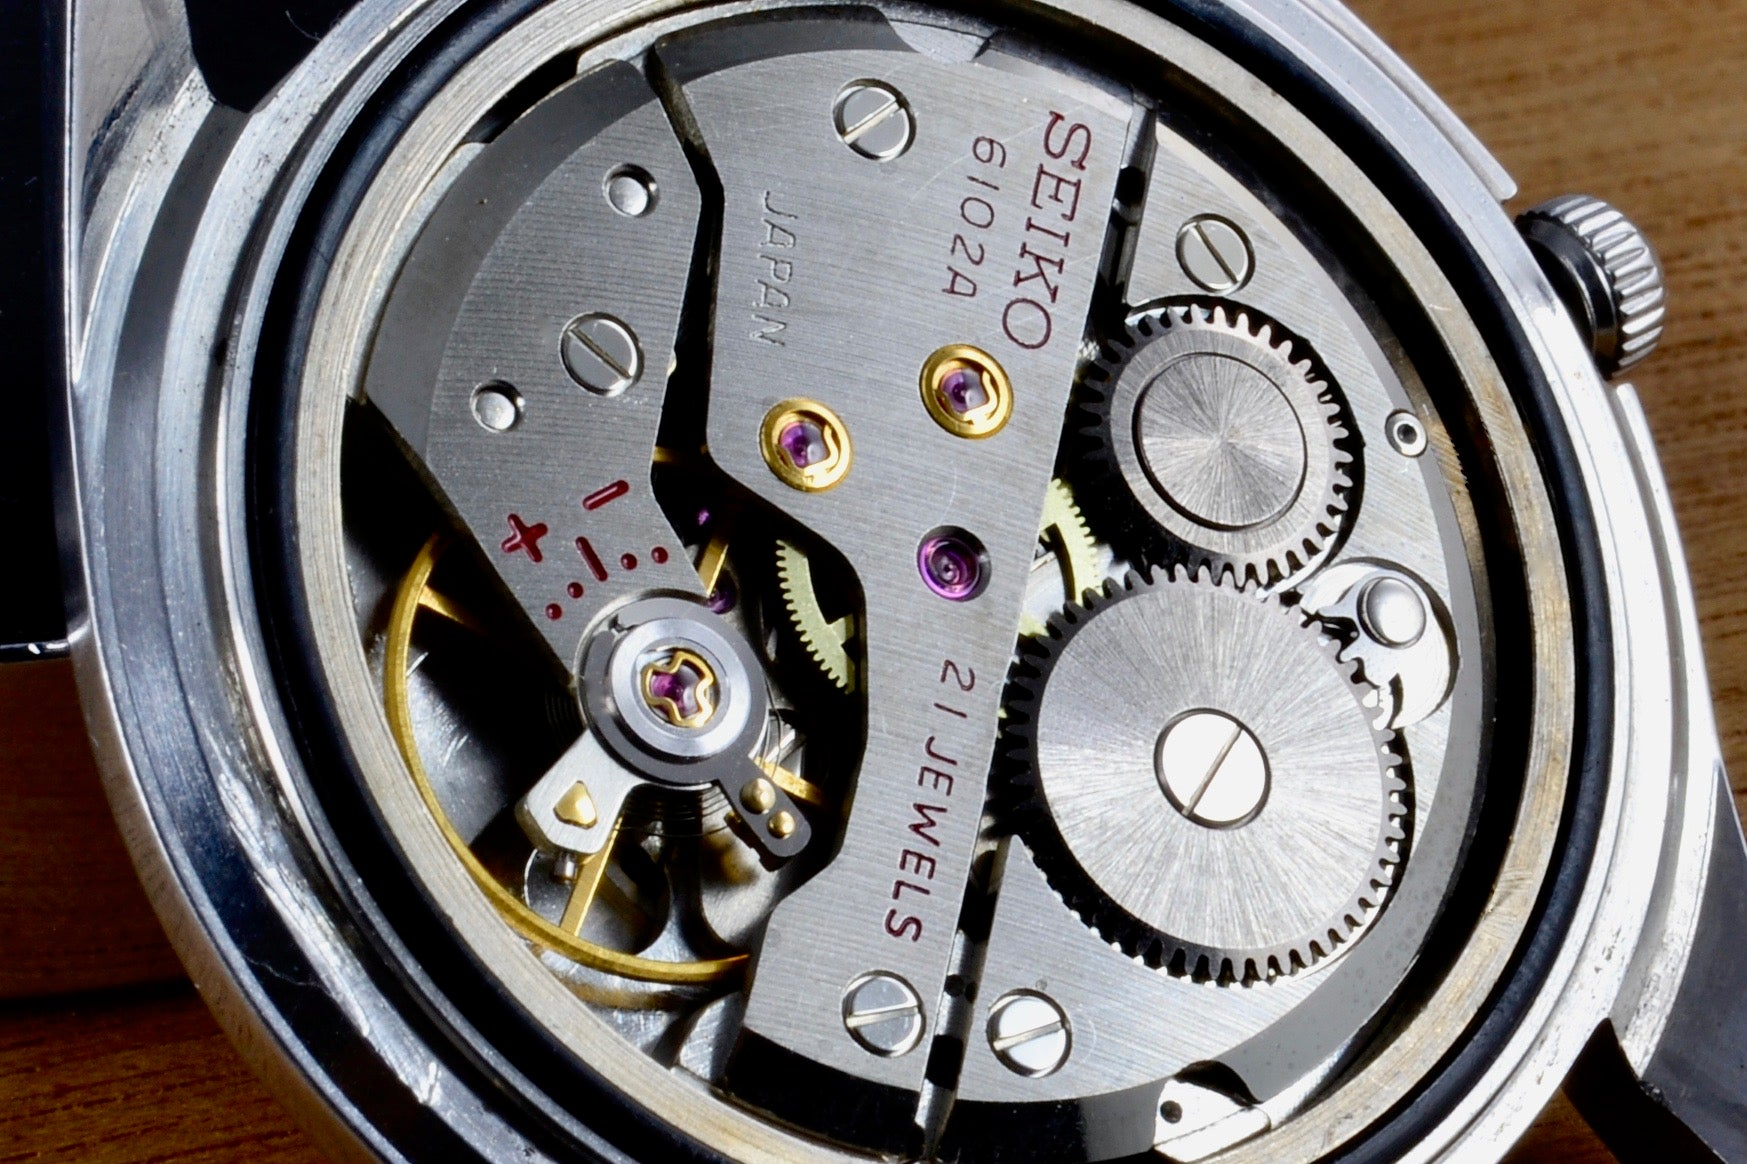 Seiko Skyliner mouvement